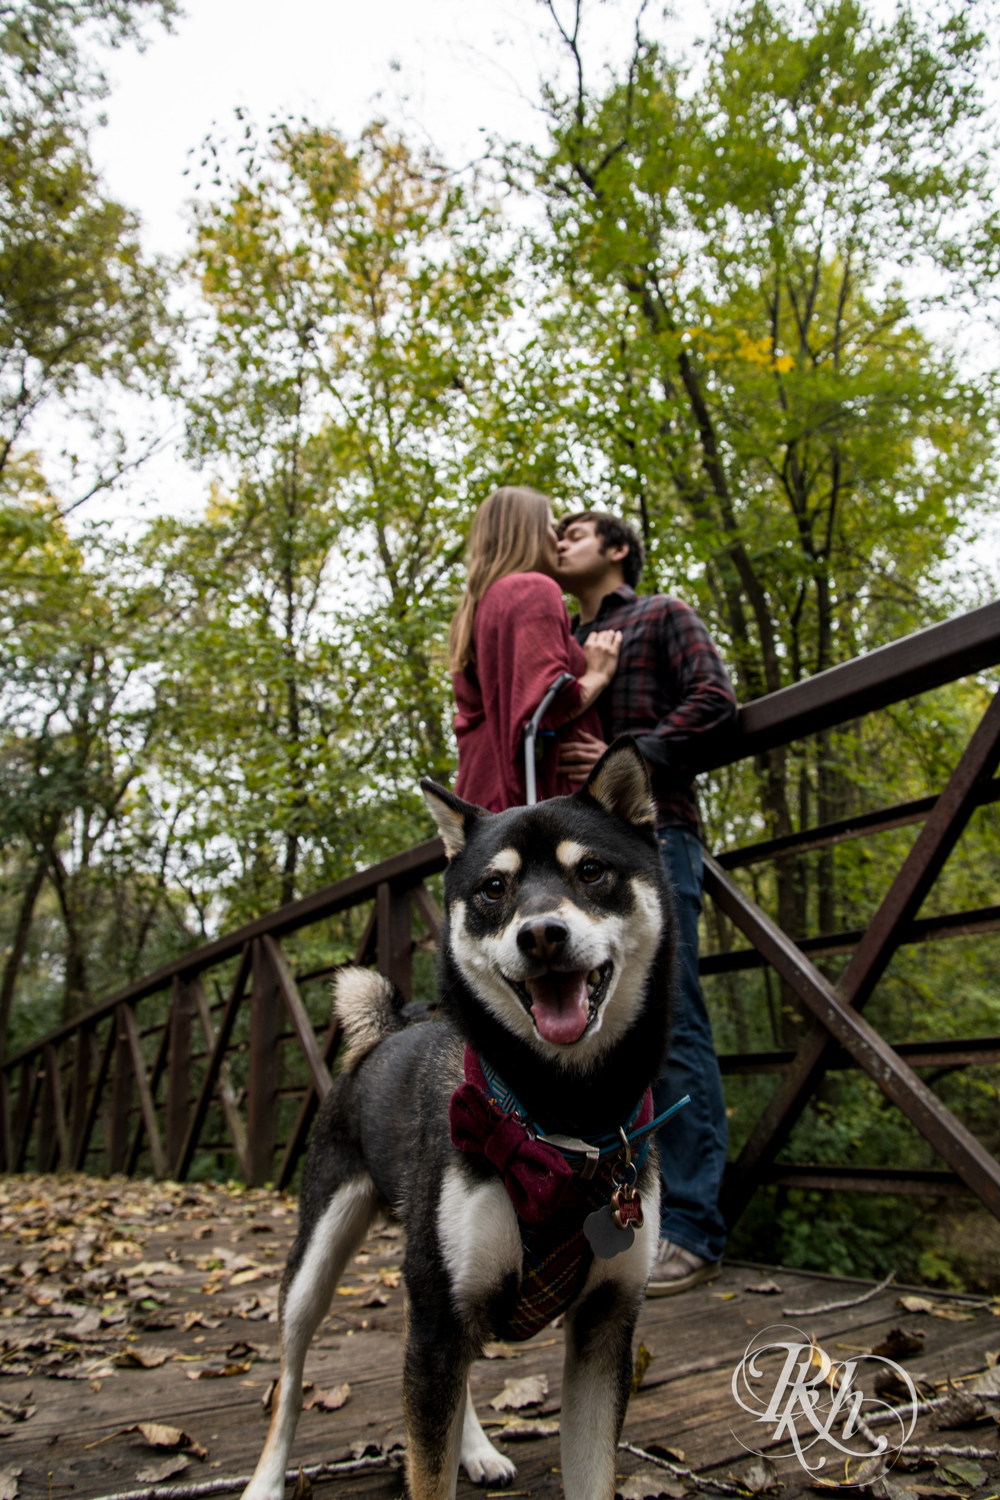 Katie & Brian - Minnesota Engagement Photography - Cosplay - RKH Images - Blog  (6 of 20).jpg